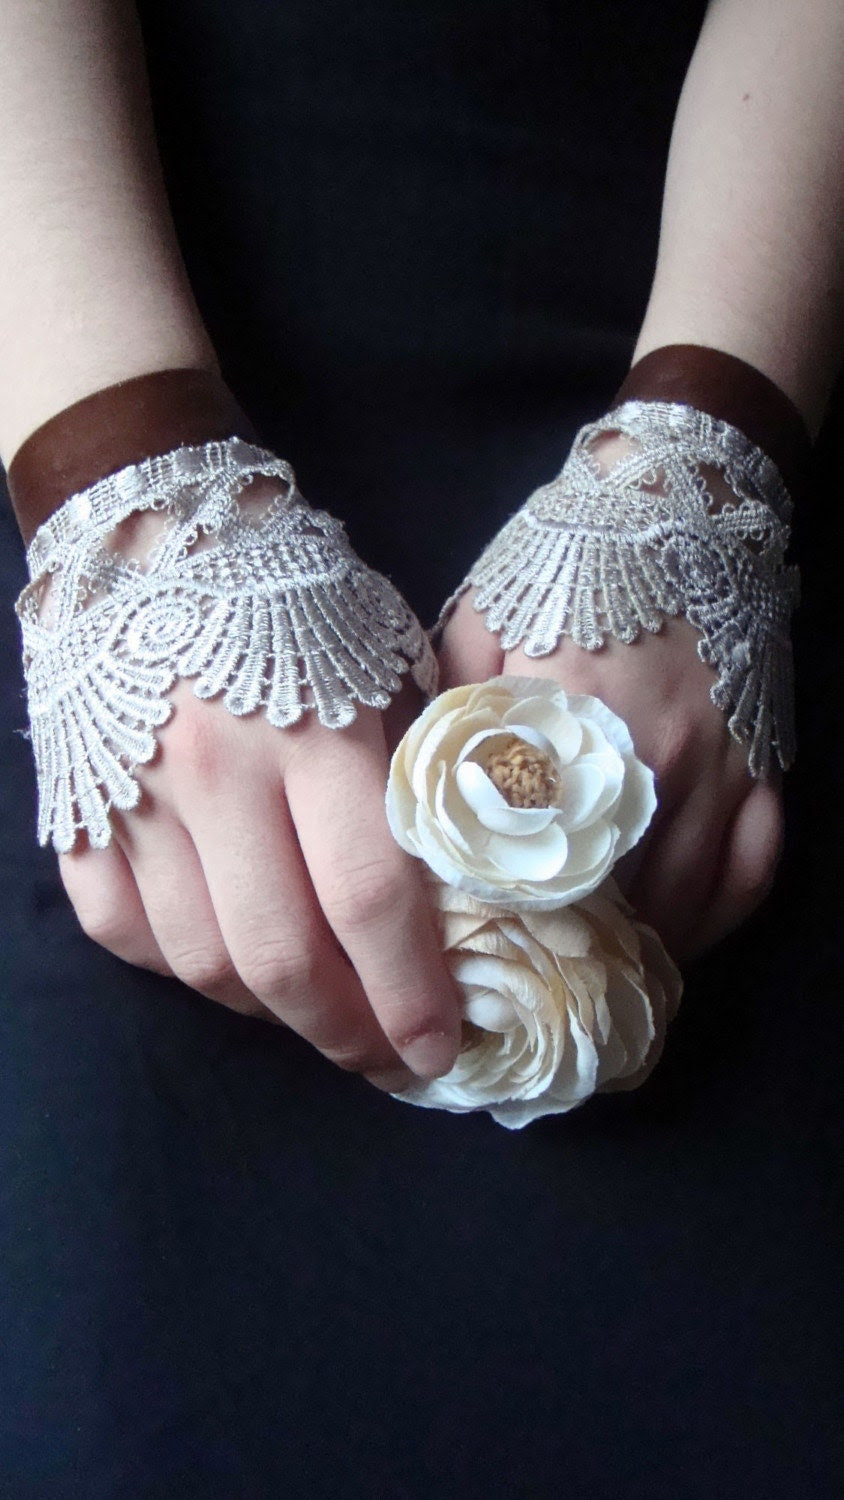 Parisian Love Affair .-. Sophisticated Lady Cufflets .-. Vintage Dream Inspired . Limited Edition . Original Sakura Couture Collection